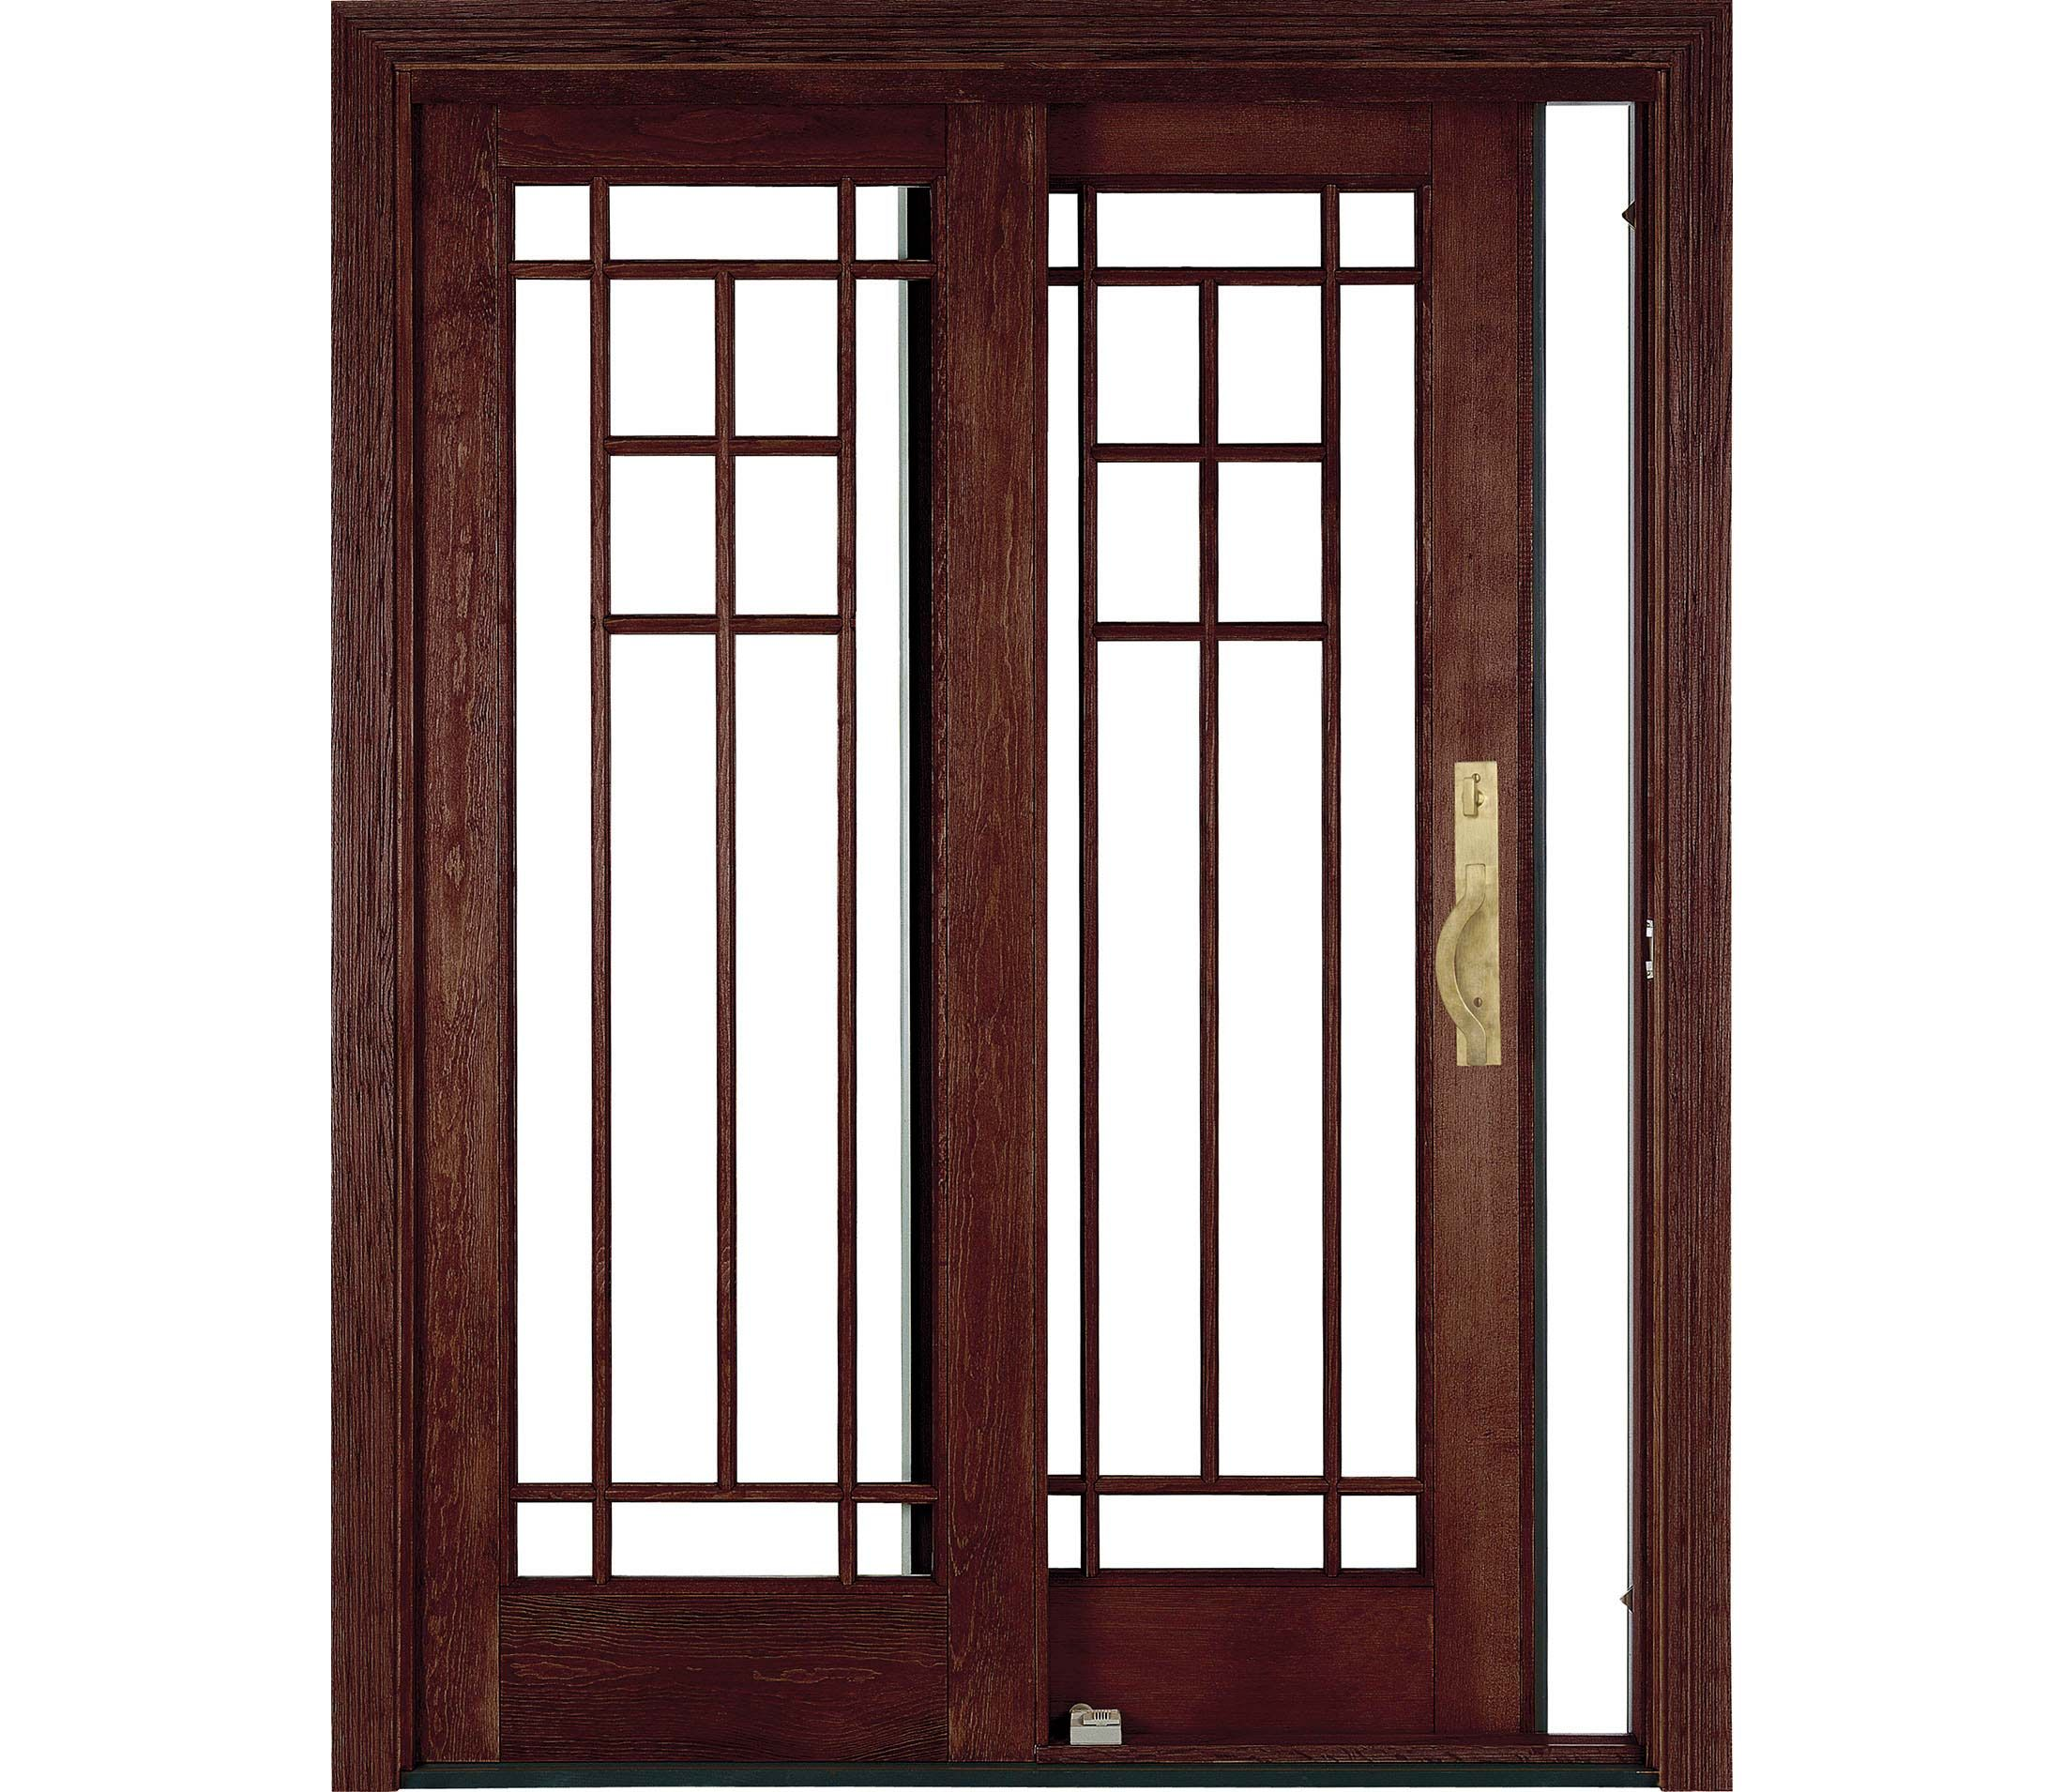 Architect series sliding patio door for Patio doors french doors